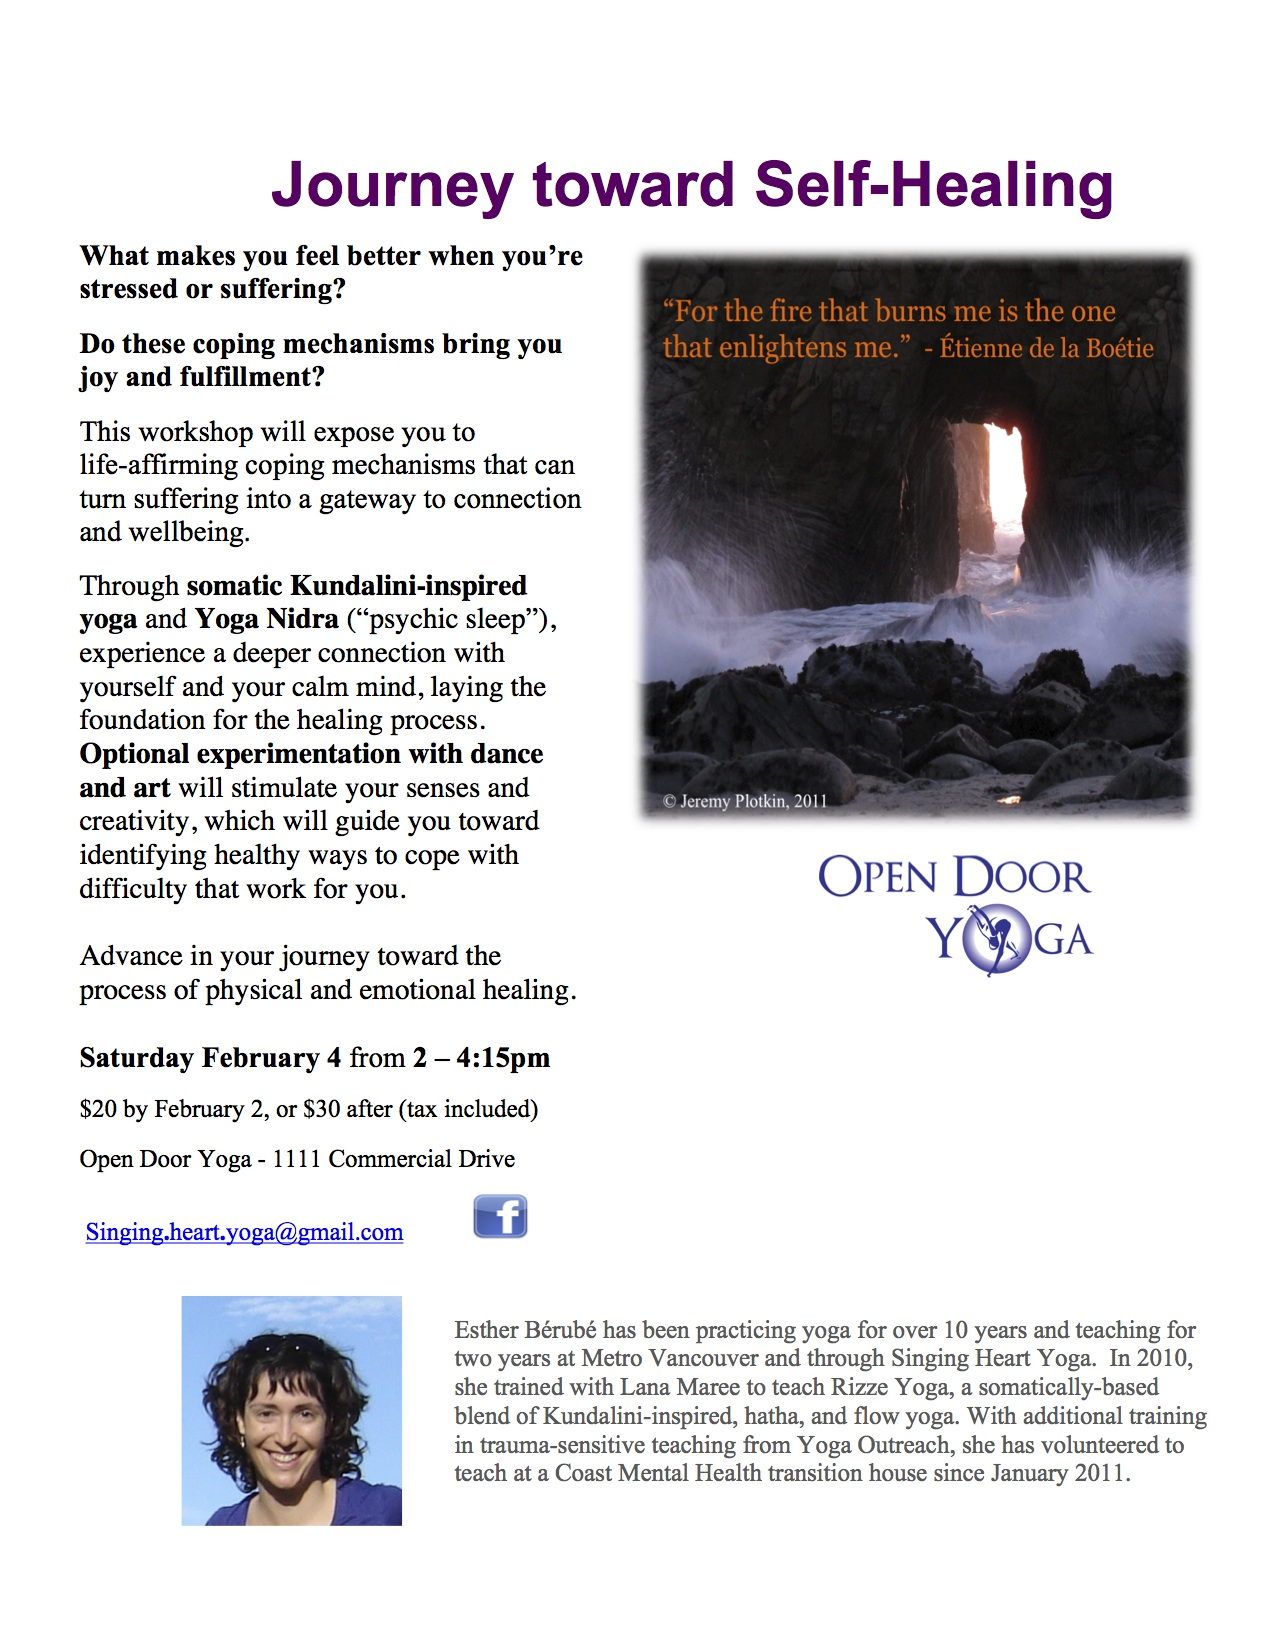 Journey toward Self Healing - Feb 4 poster